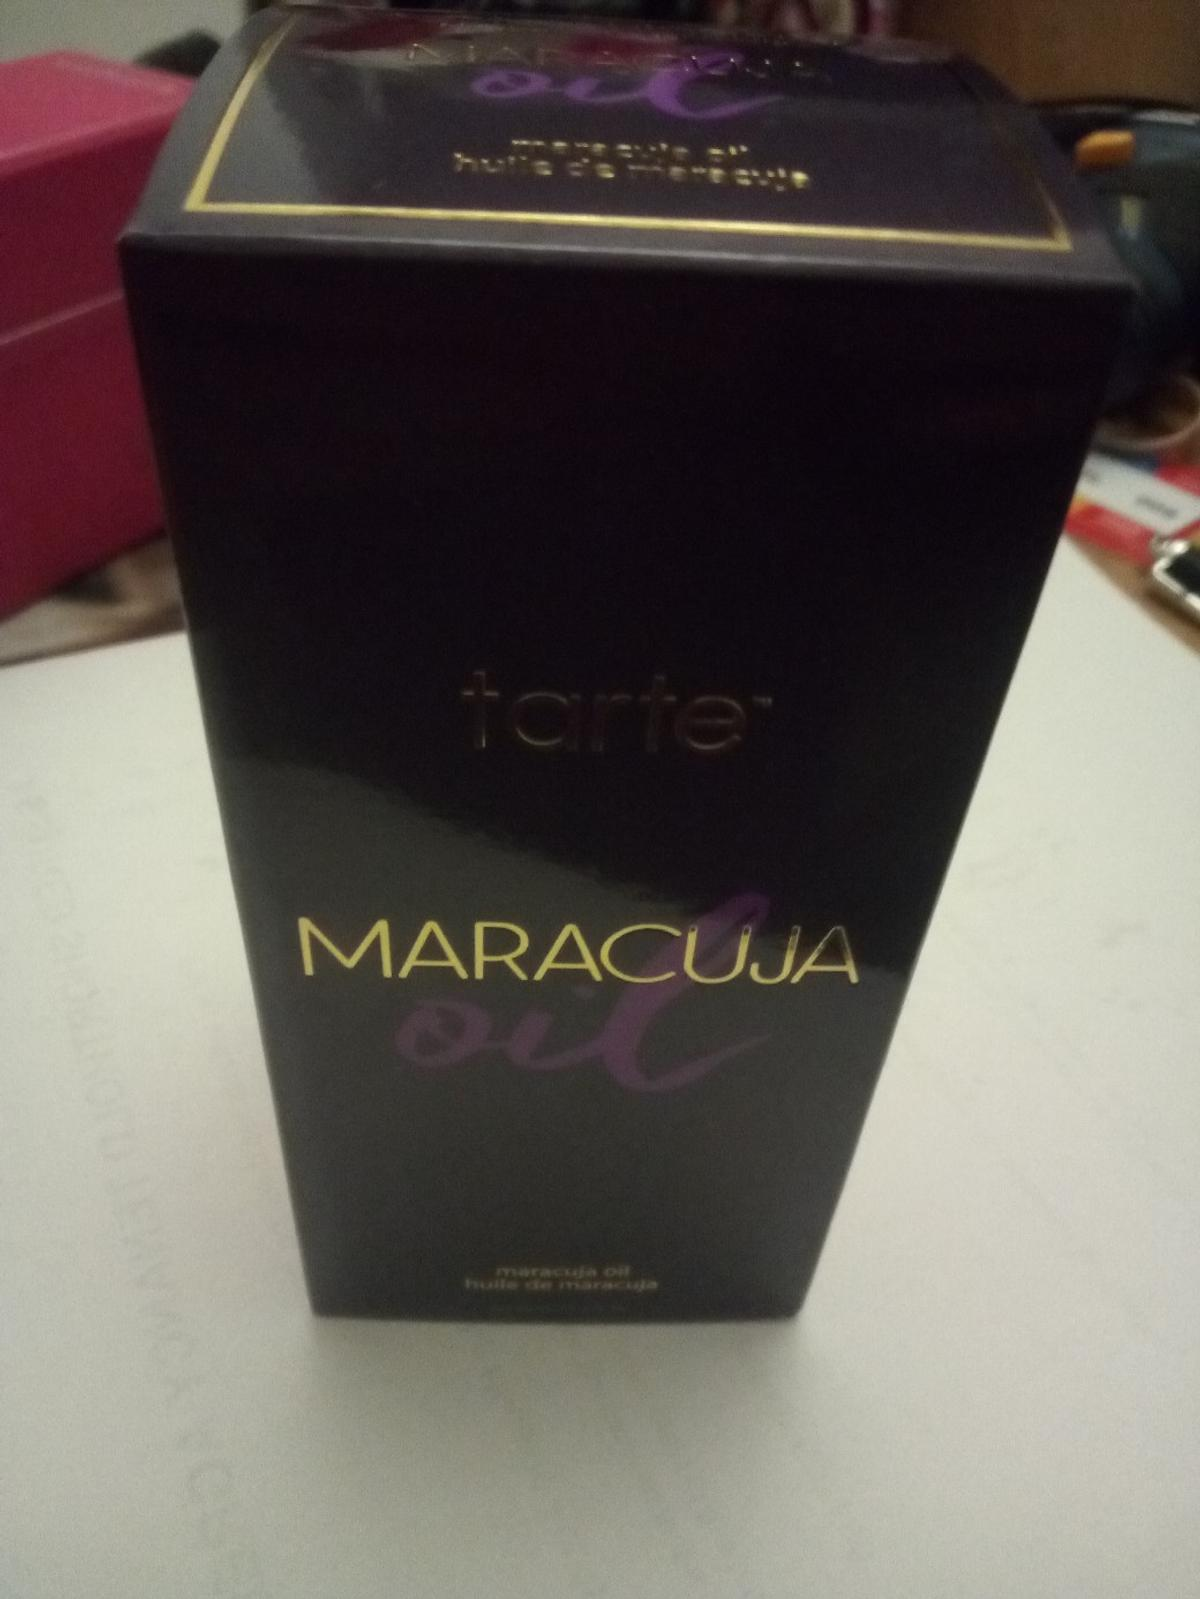 Maracuja oil ,50ml from Tarte,never used still boxed use by is 12 months from opening, can post for extra charge